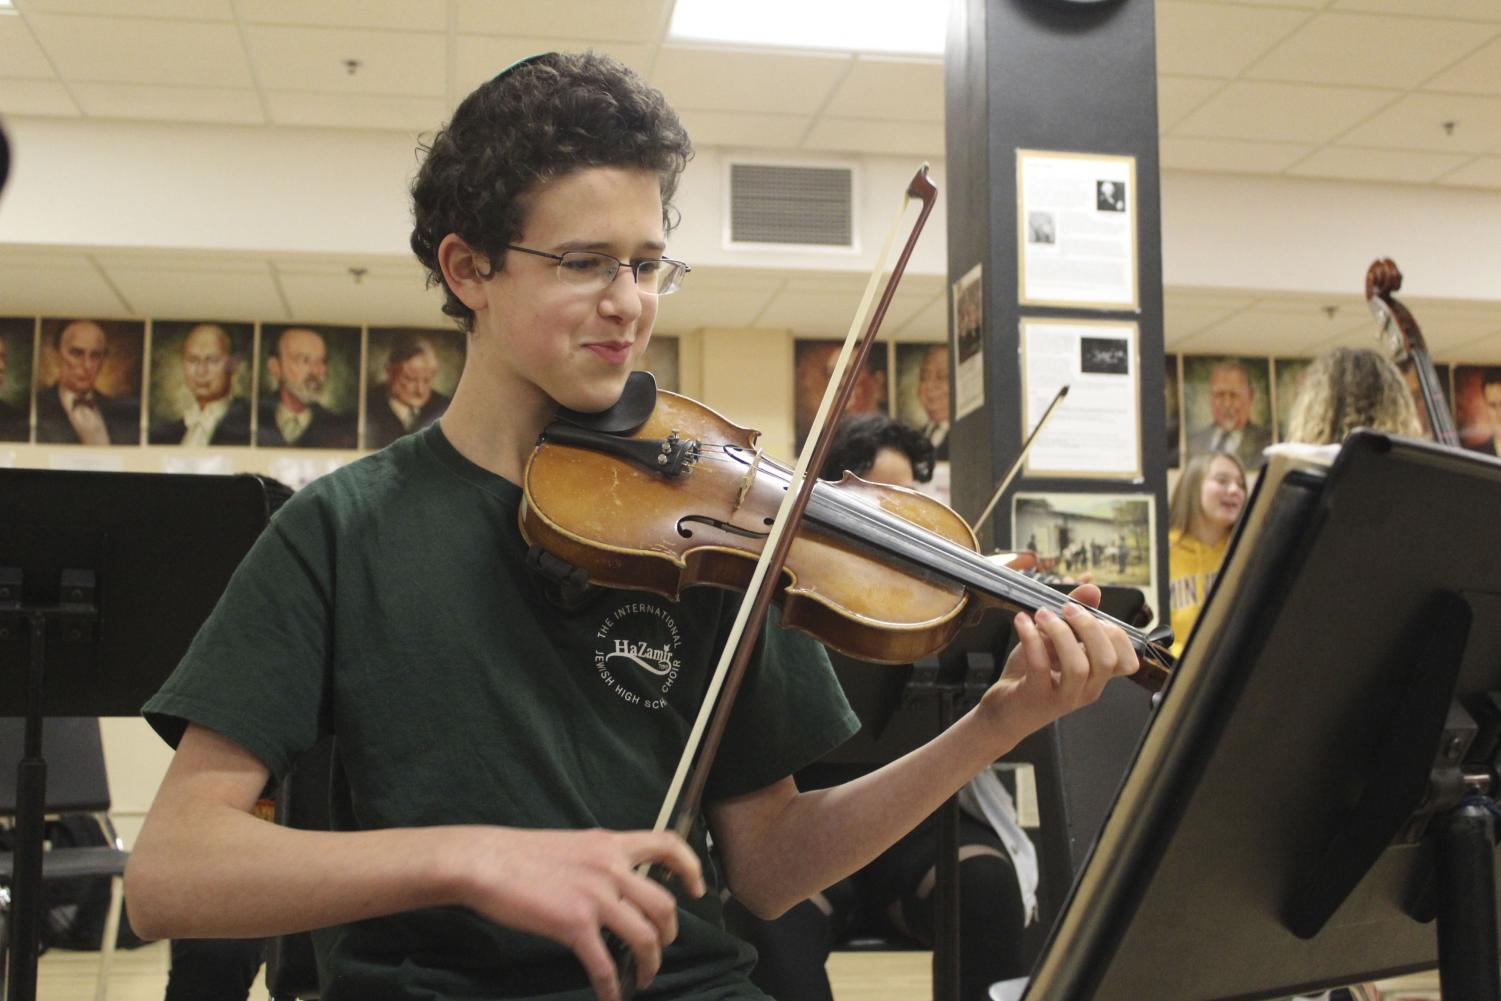 Junior Yoni Potter practices violin during class Dec. 17 in preparation for the orchestra concert Dec. 20.